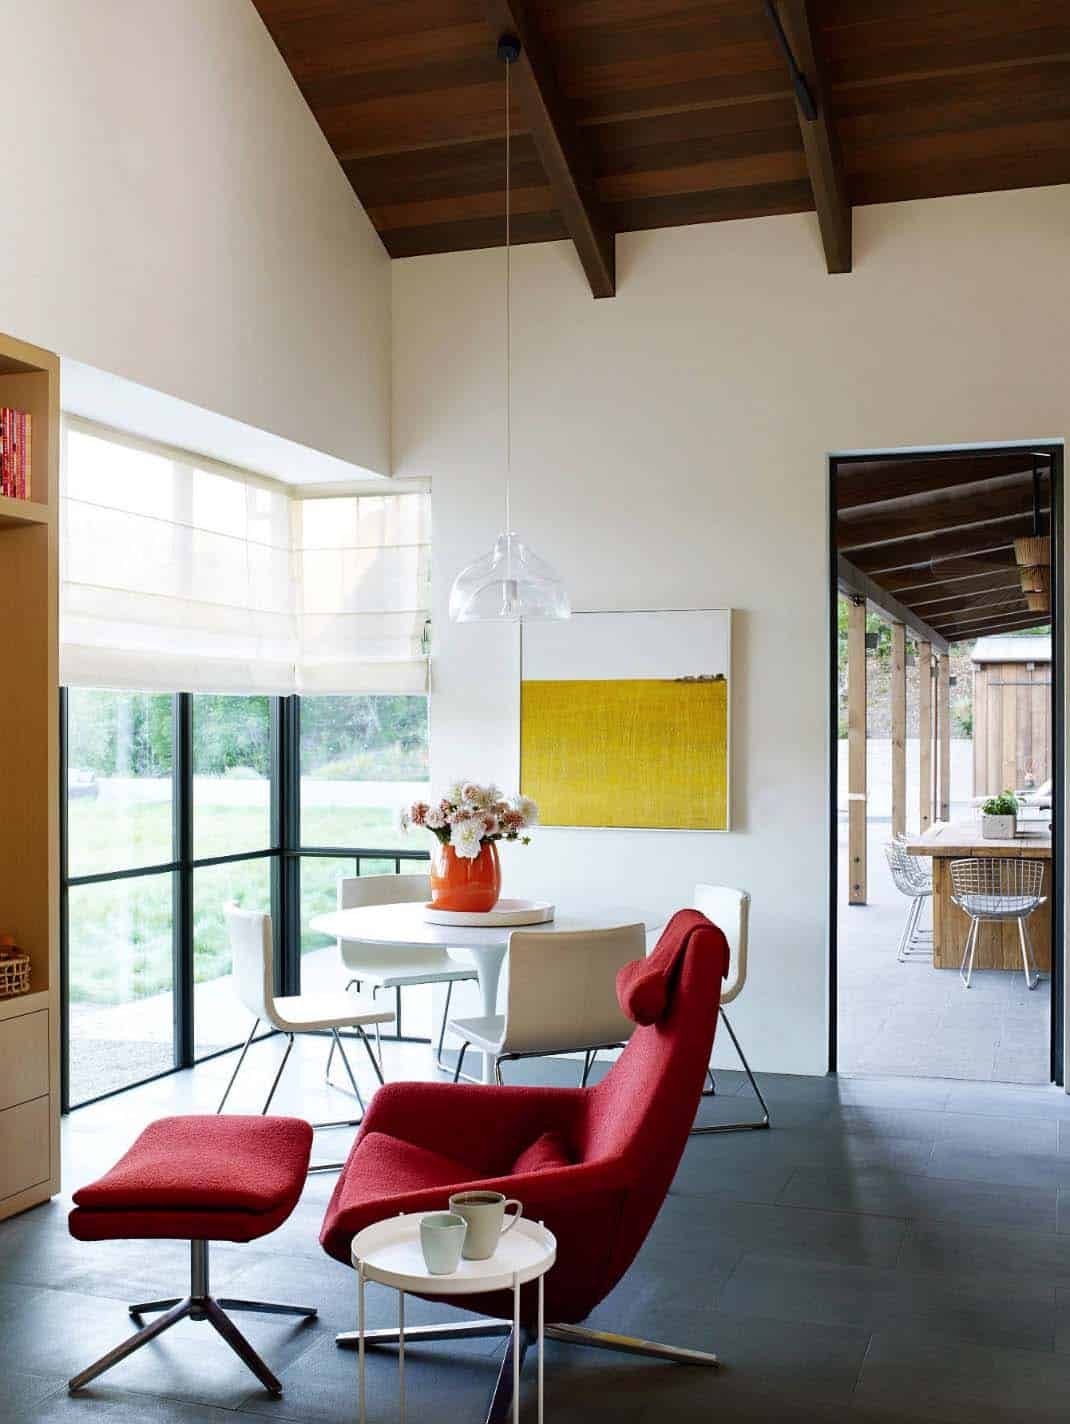 Contemporary Courtyard House-Butler Armsden Architects-09-1 Kindesign